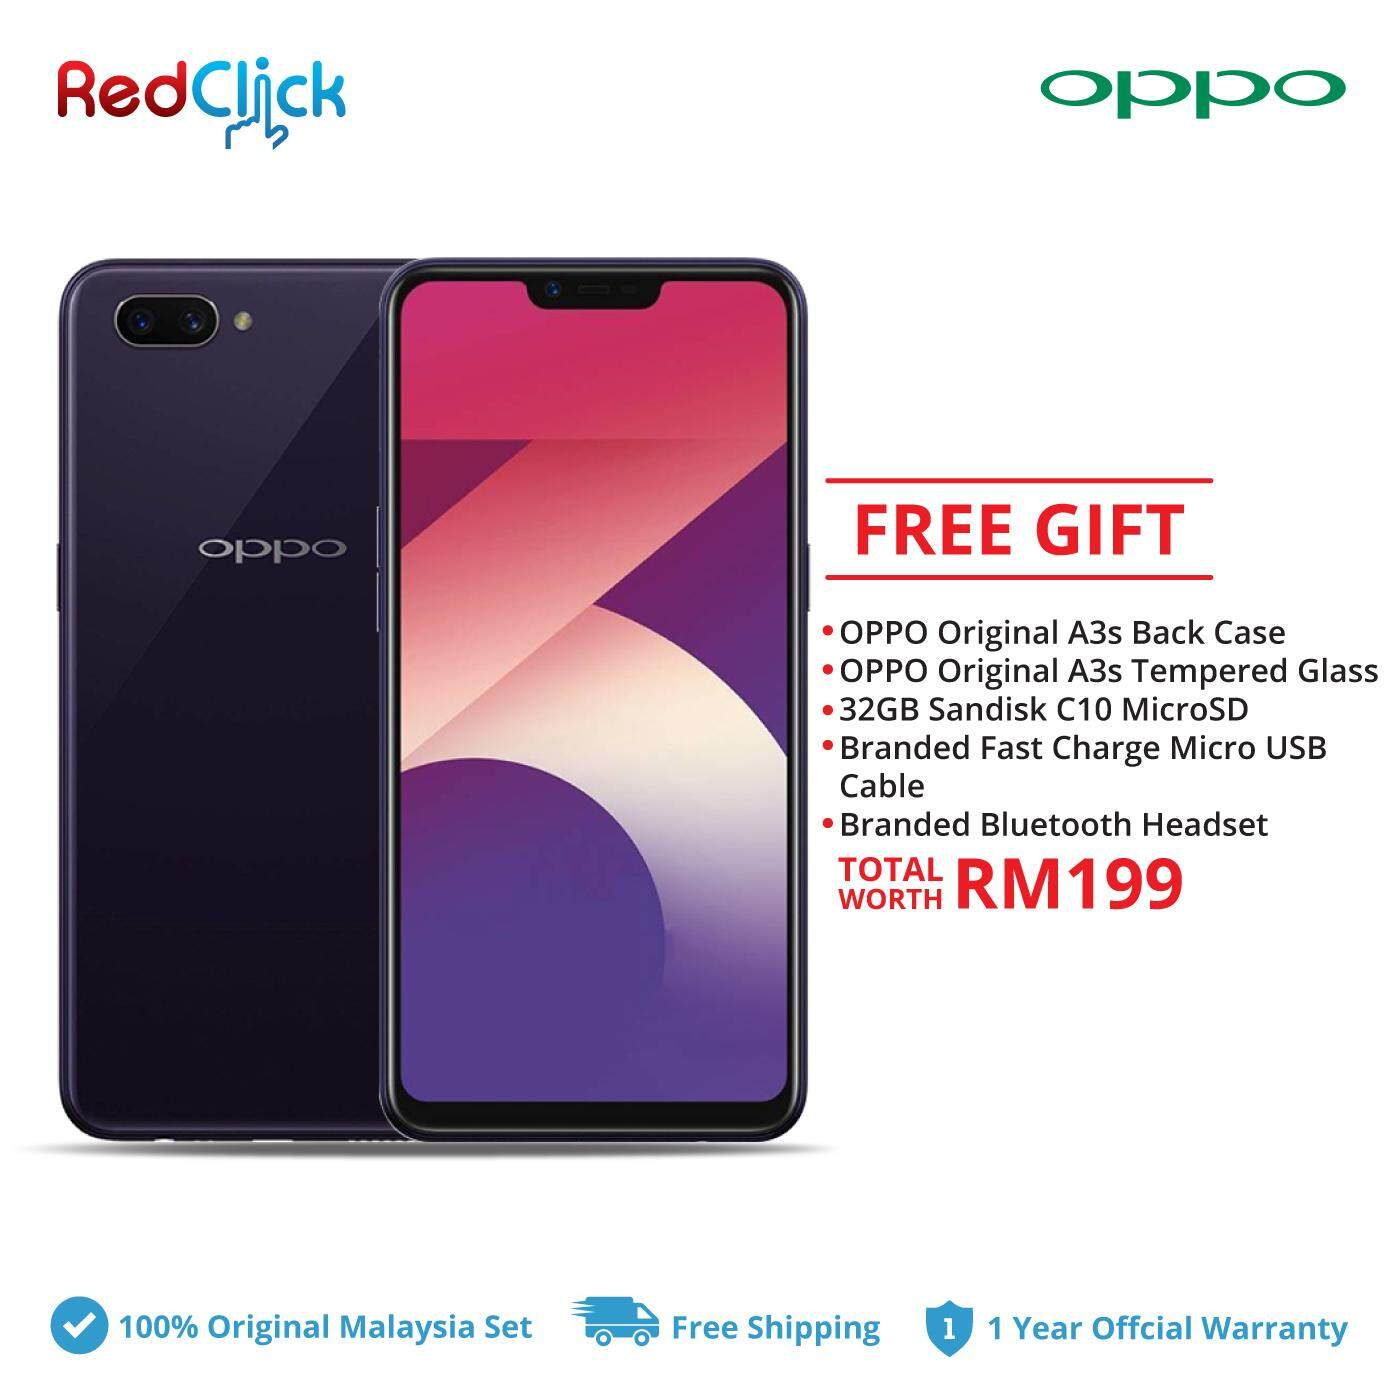 Best Oppo Mobiles Tablets Deals On Lazada Malaysia A37 New 4g 5 Inch Ram 2gb Rom 16gb A3s Free Gift Worth Rm199